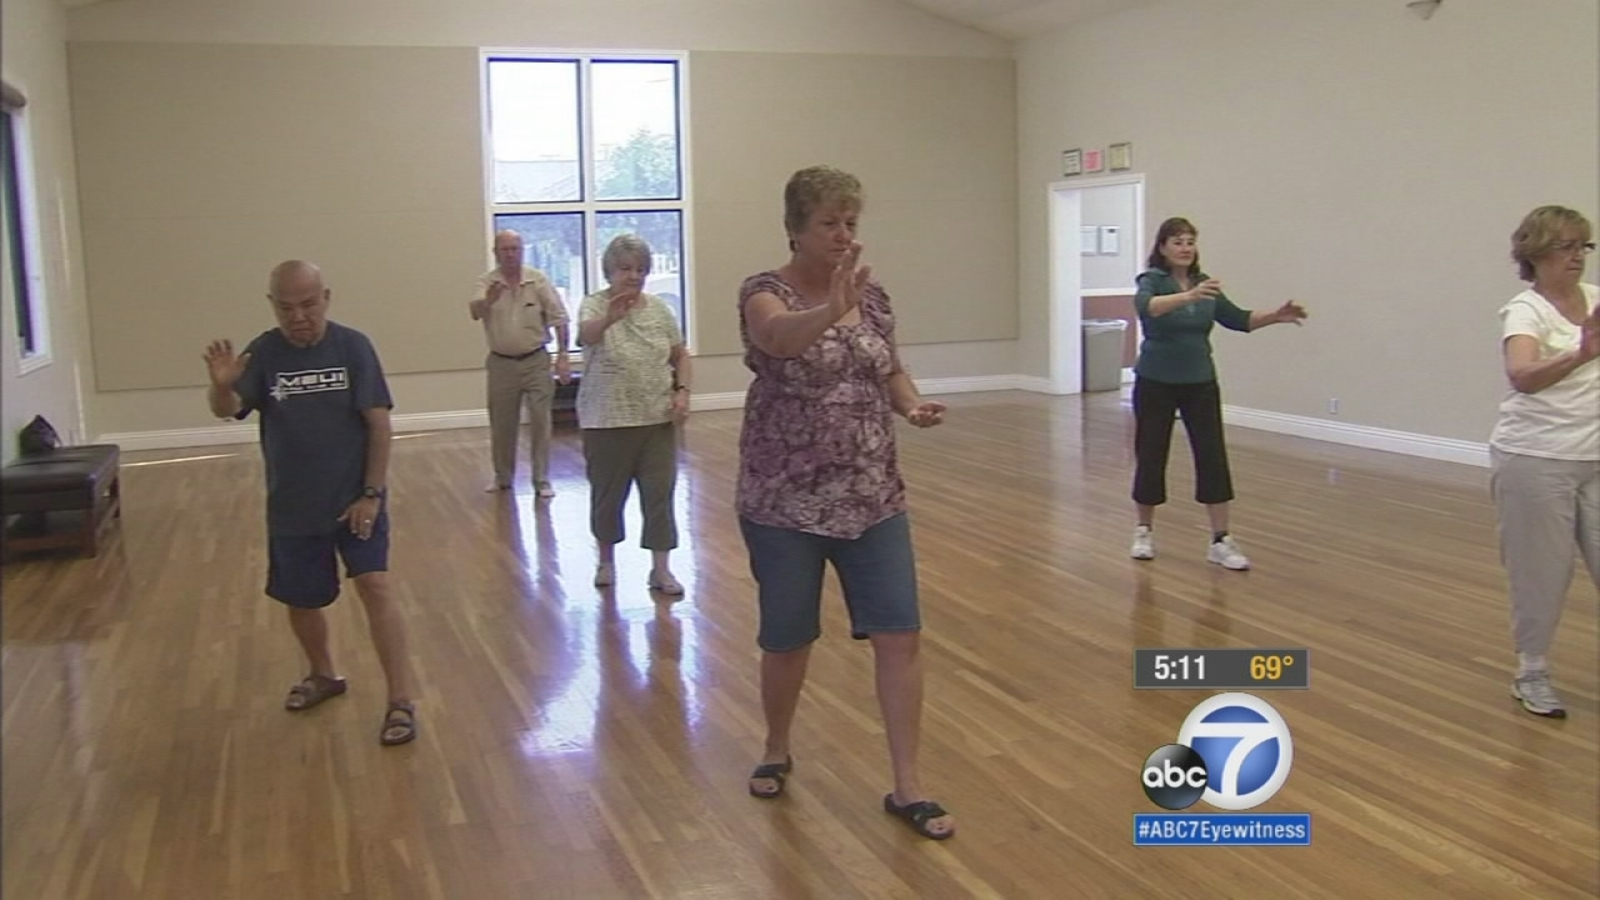 Exercise can slow onset of Alzheimers memory loss, study